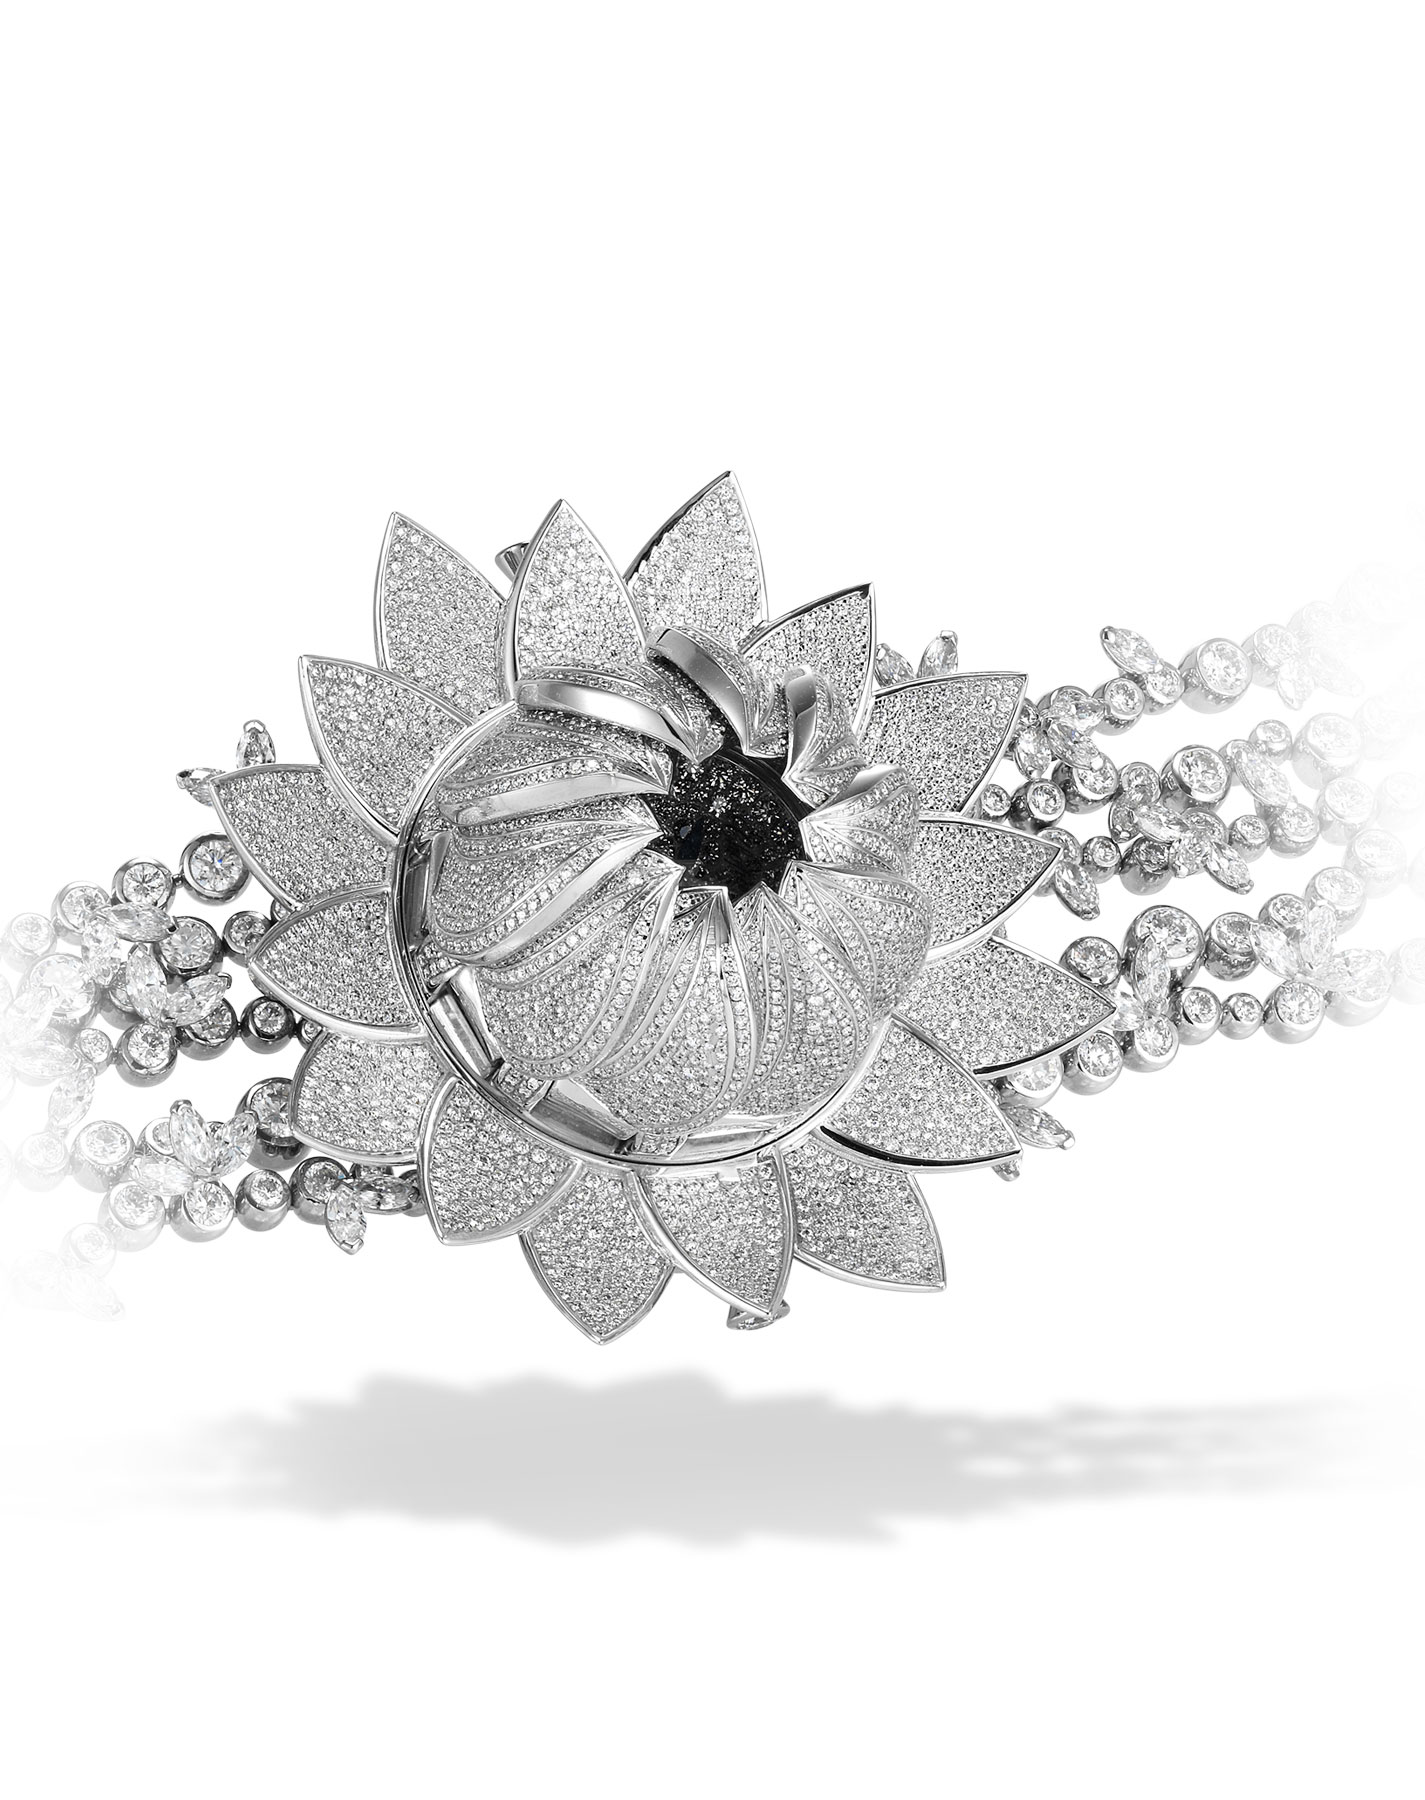 Close-up view of the Diamond paved lotus blanc watch and bracelet, dial is hidden by the closed petals